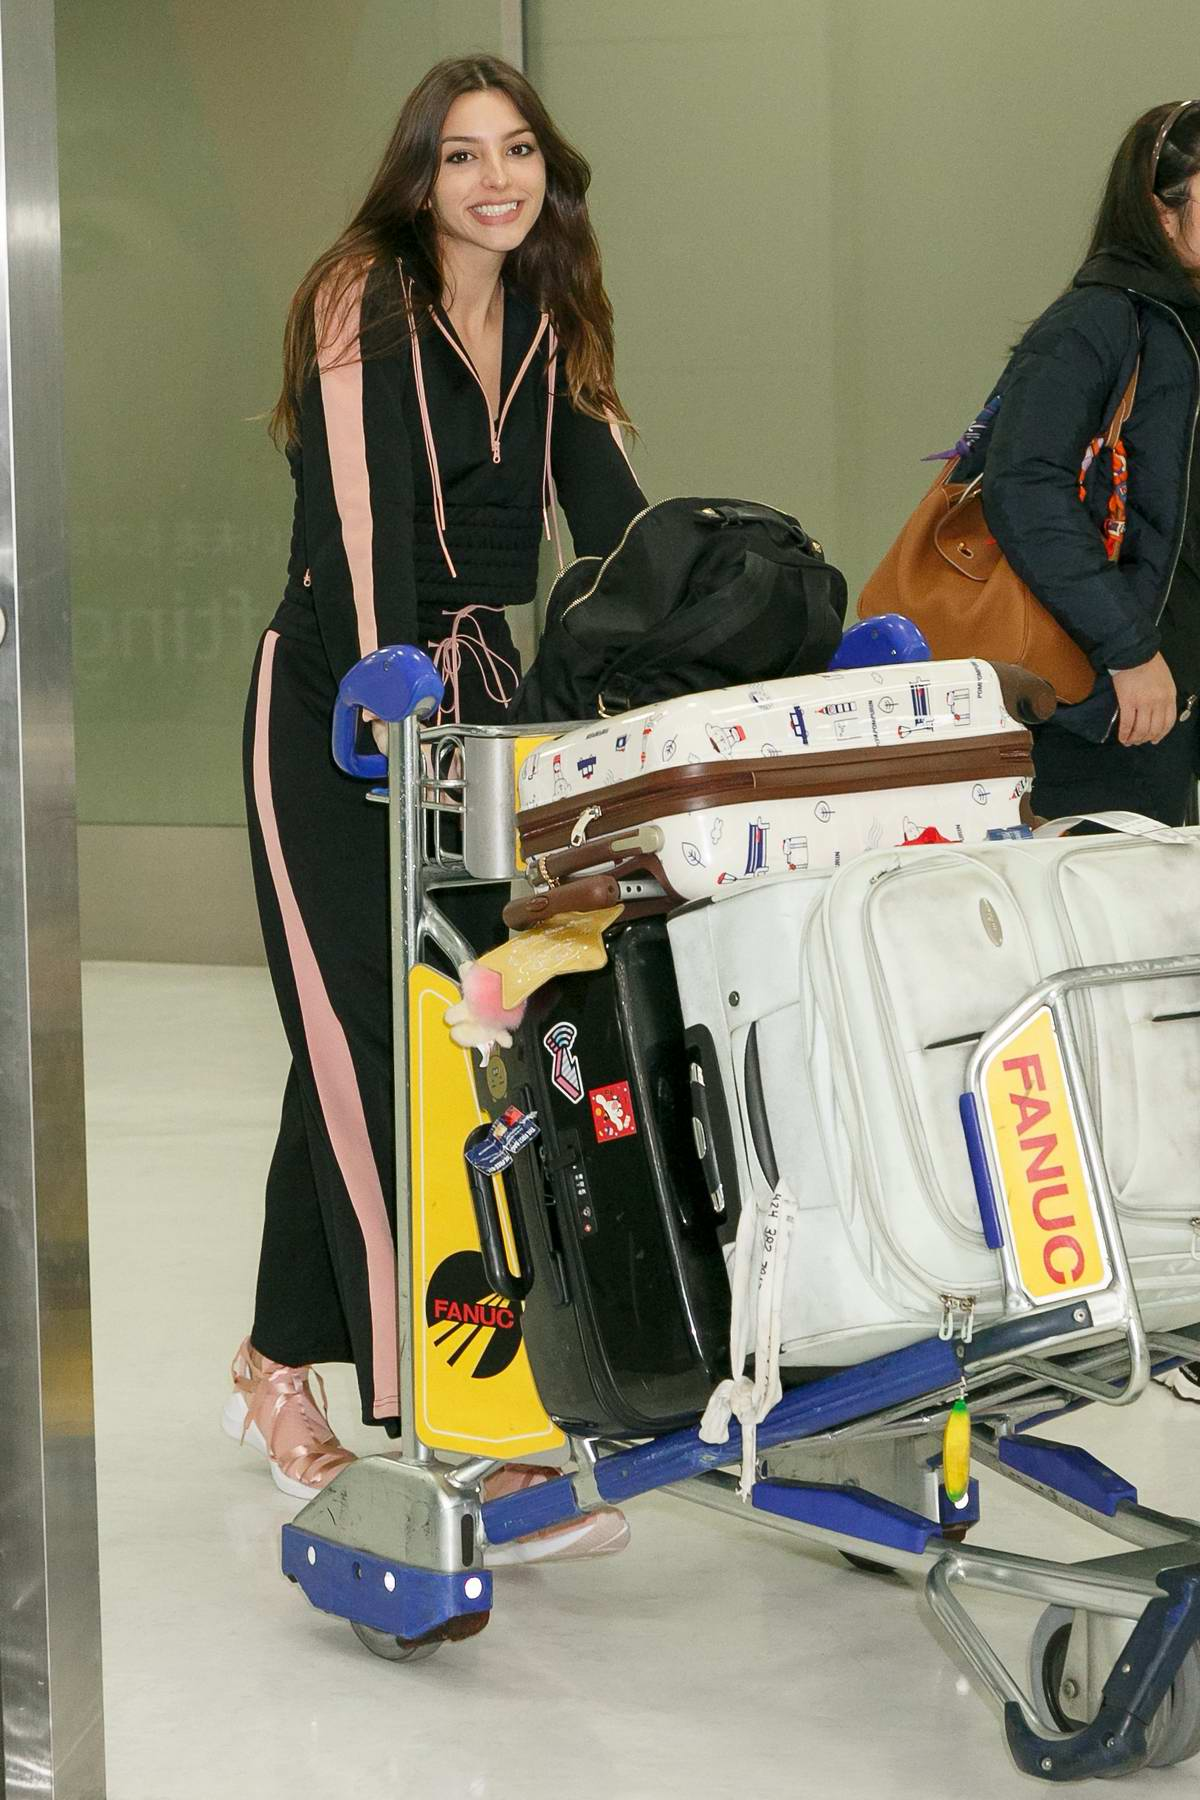 Celine Farach arrives at Narita International Airport in Tokyo, Japan